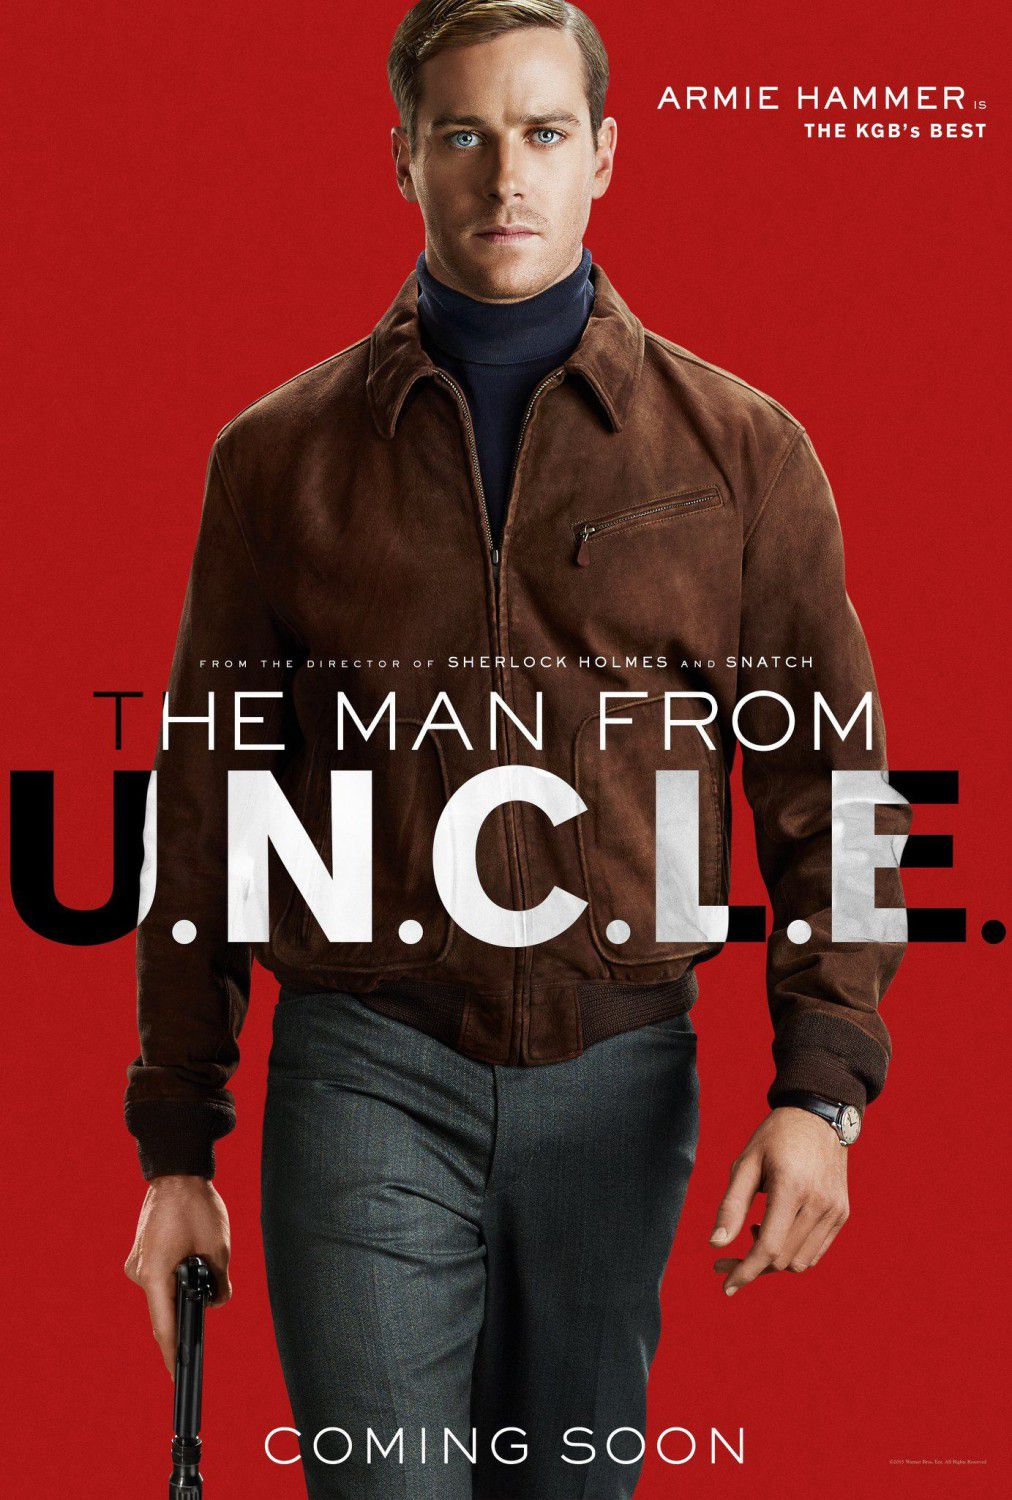 U.N.C.L.E. - Man from UNCLE - Armie Hammer